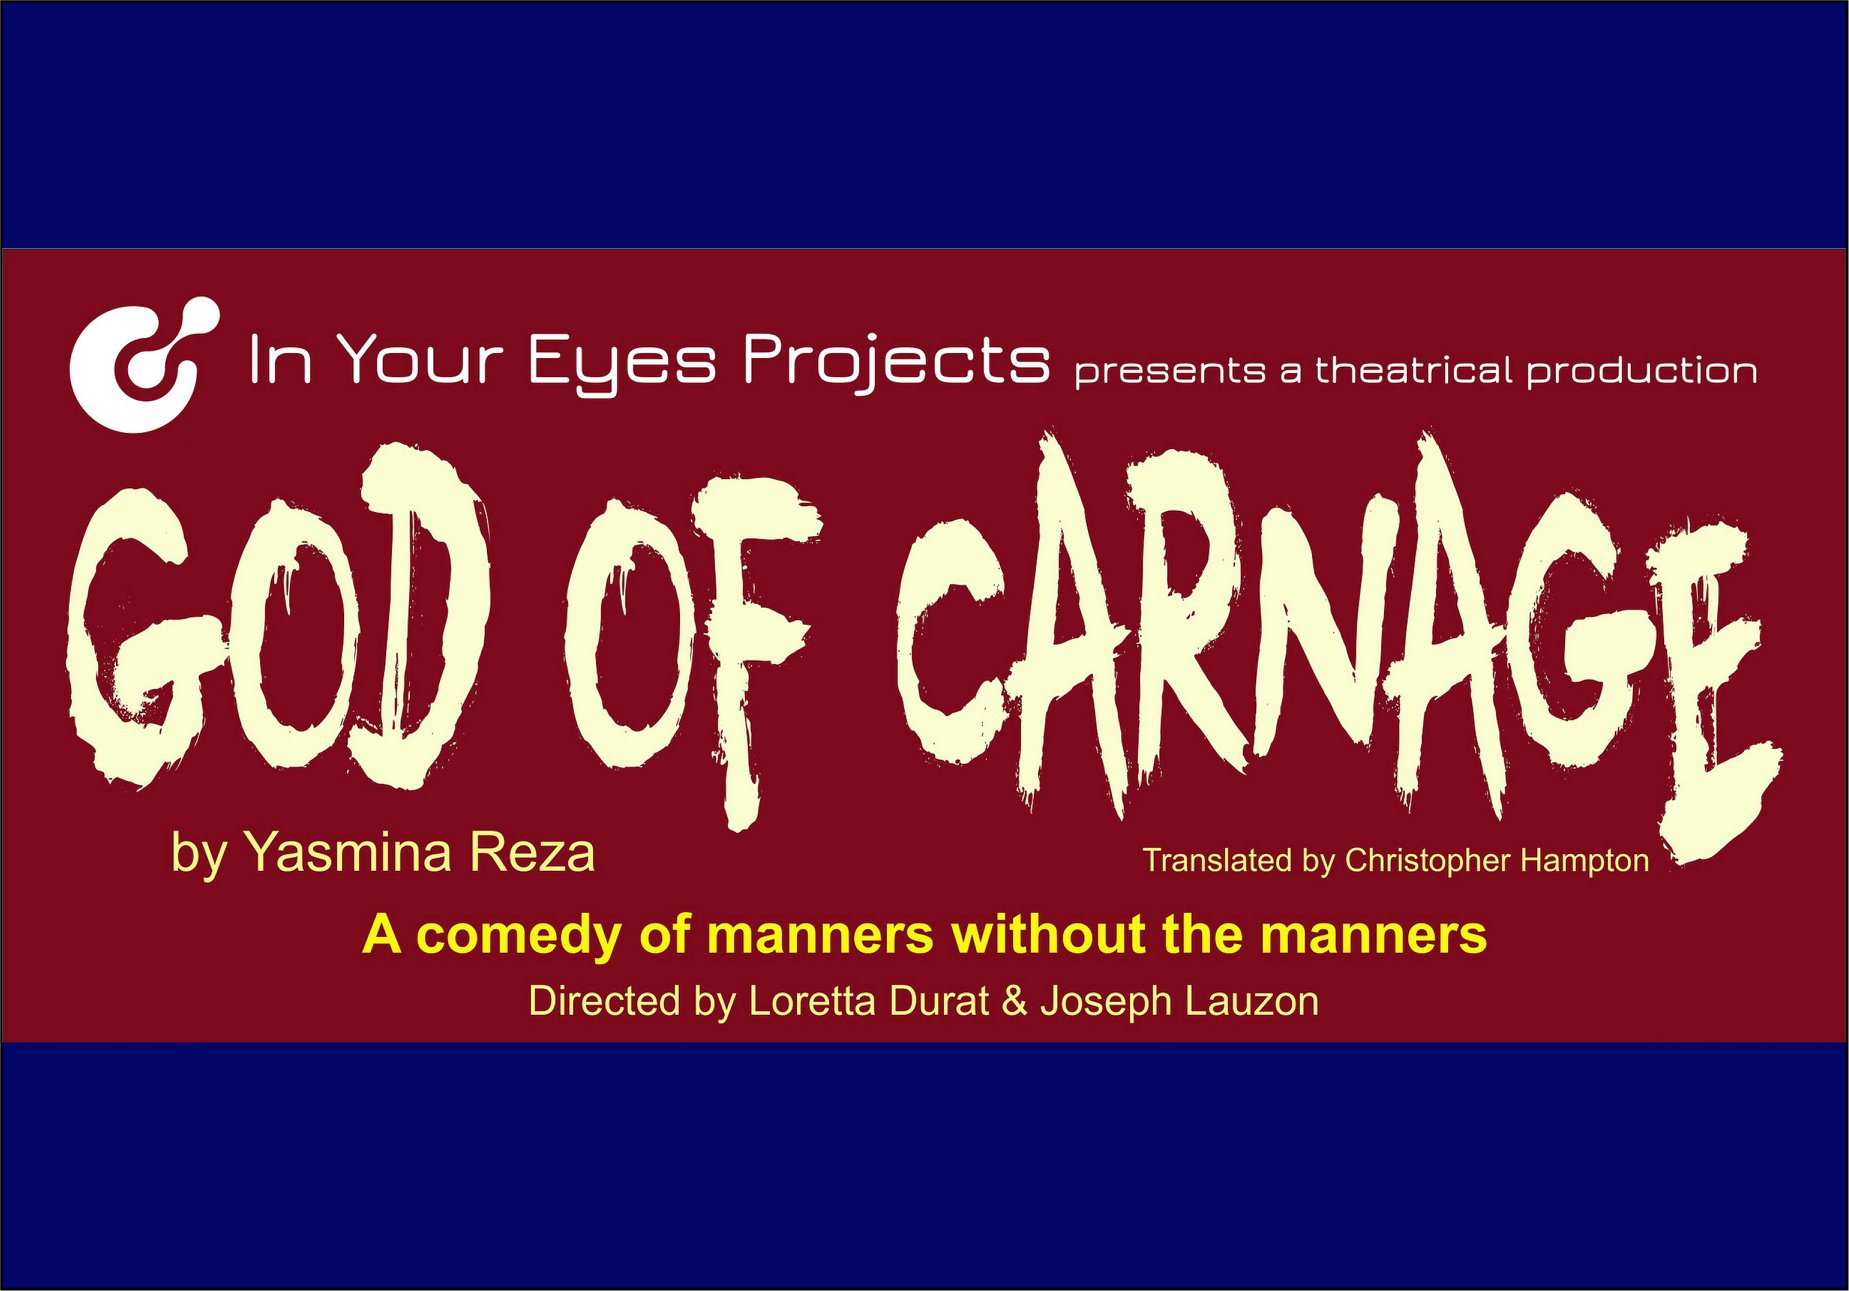 Yasmina Reza's God of Carnage